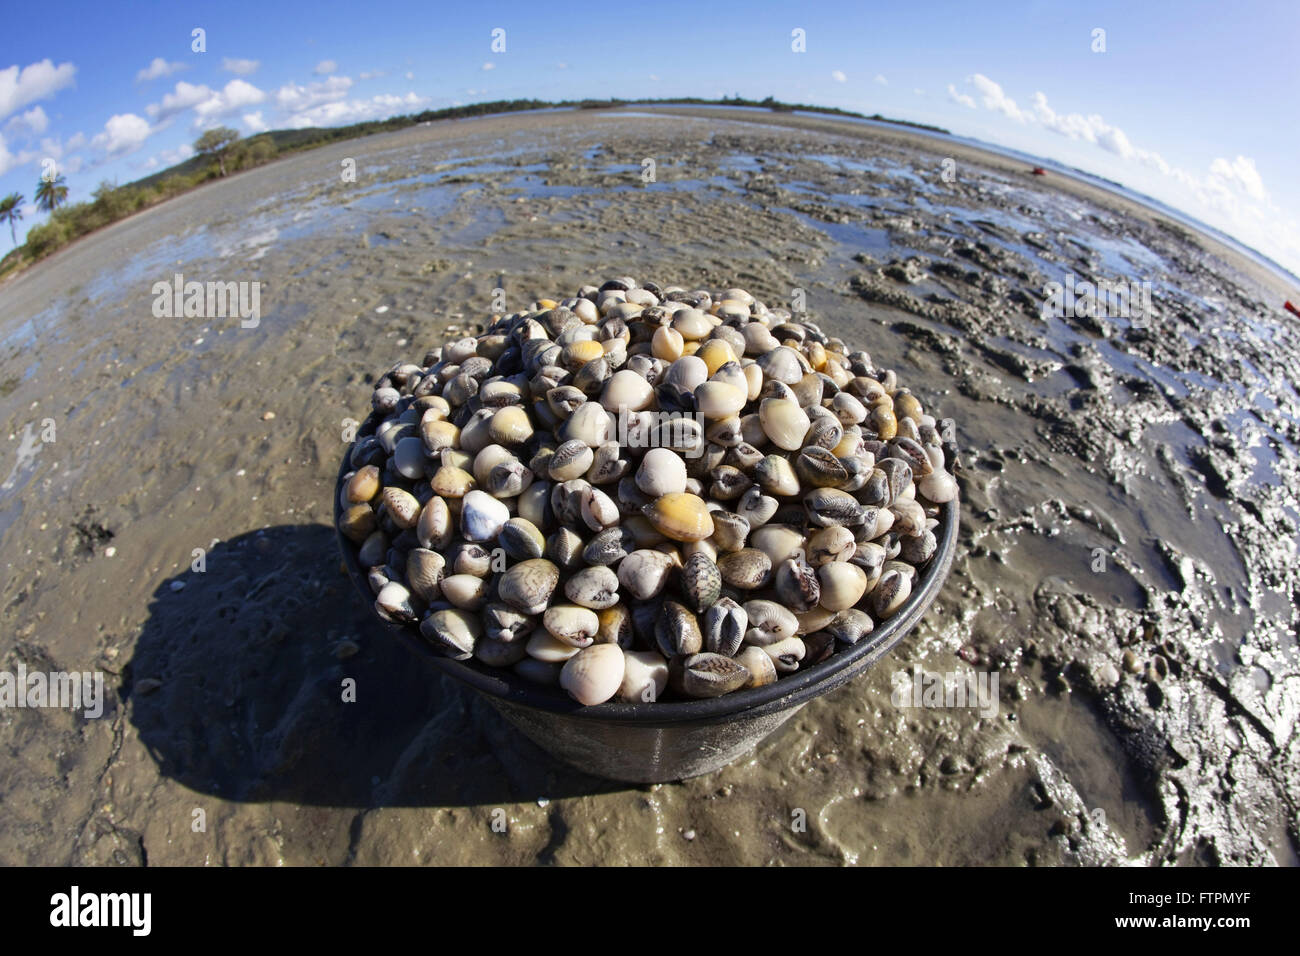 Mollusk known as pellet collected in mangroves in the Bay of All Saints - Anomalocardia en - Stock Image